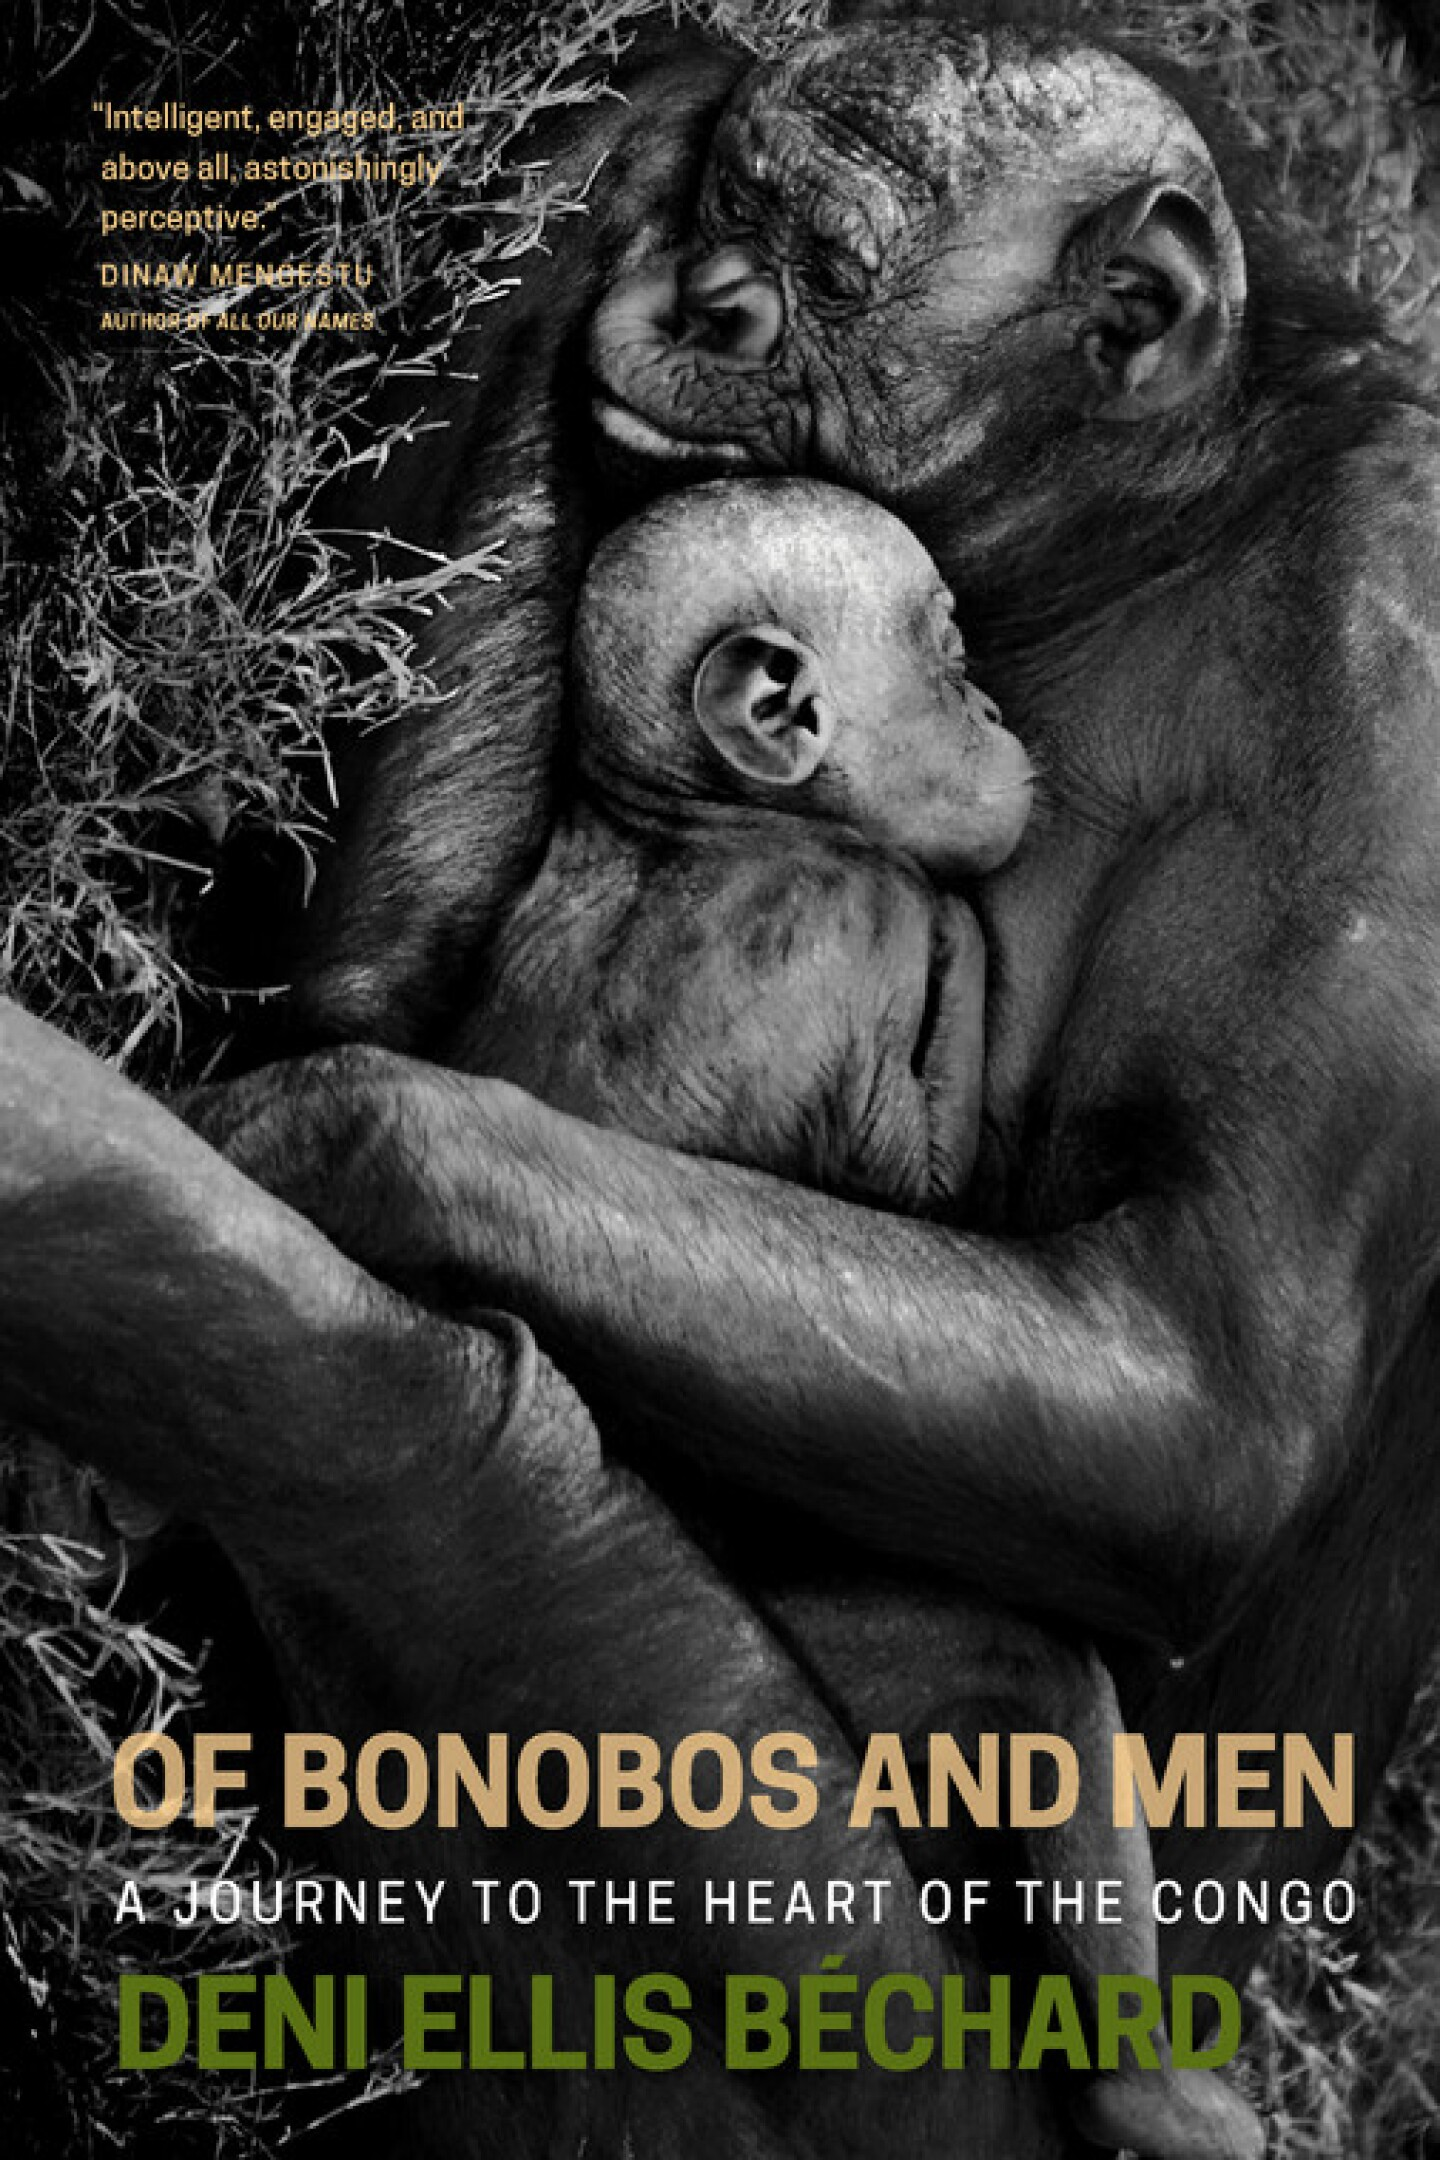 Of_Bonobos_and_Men_300dpi_RGB_0.jpg